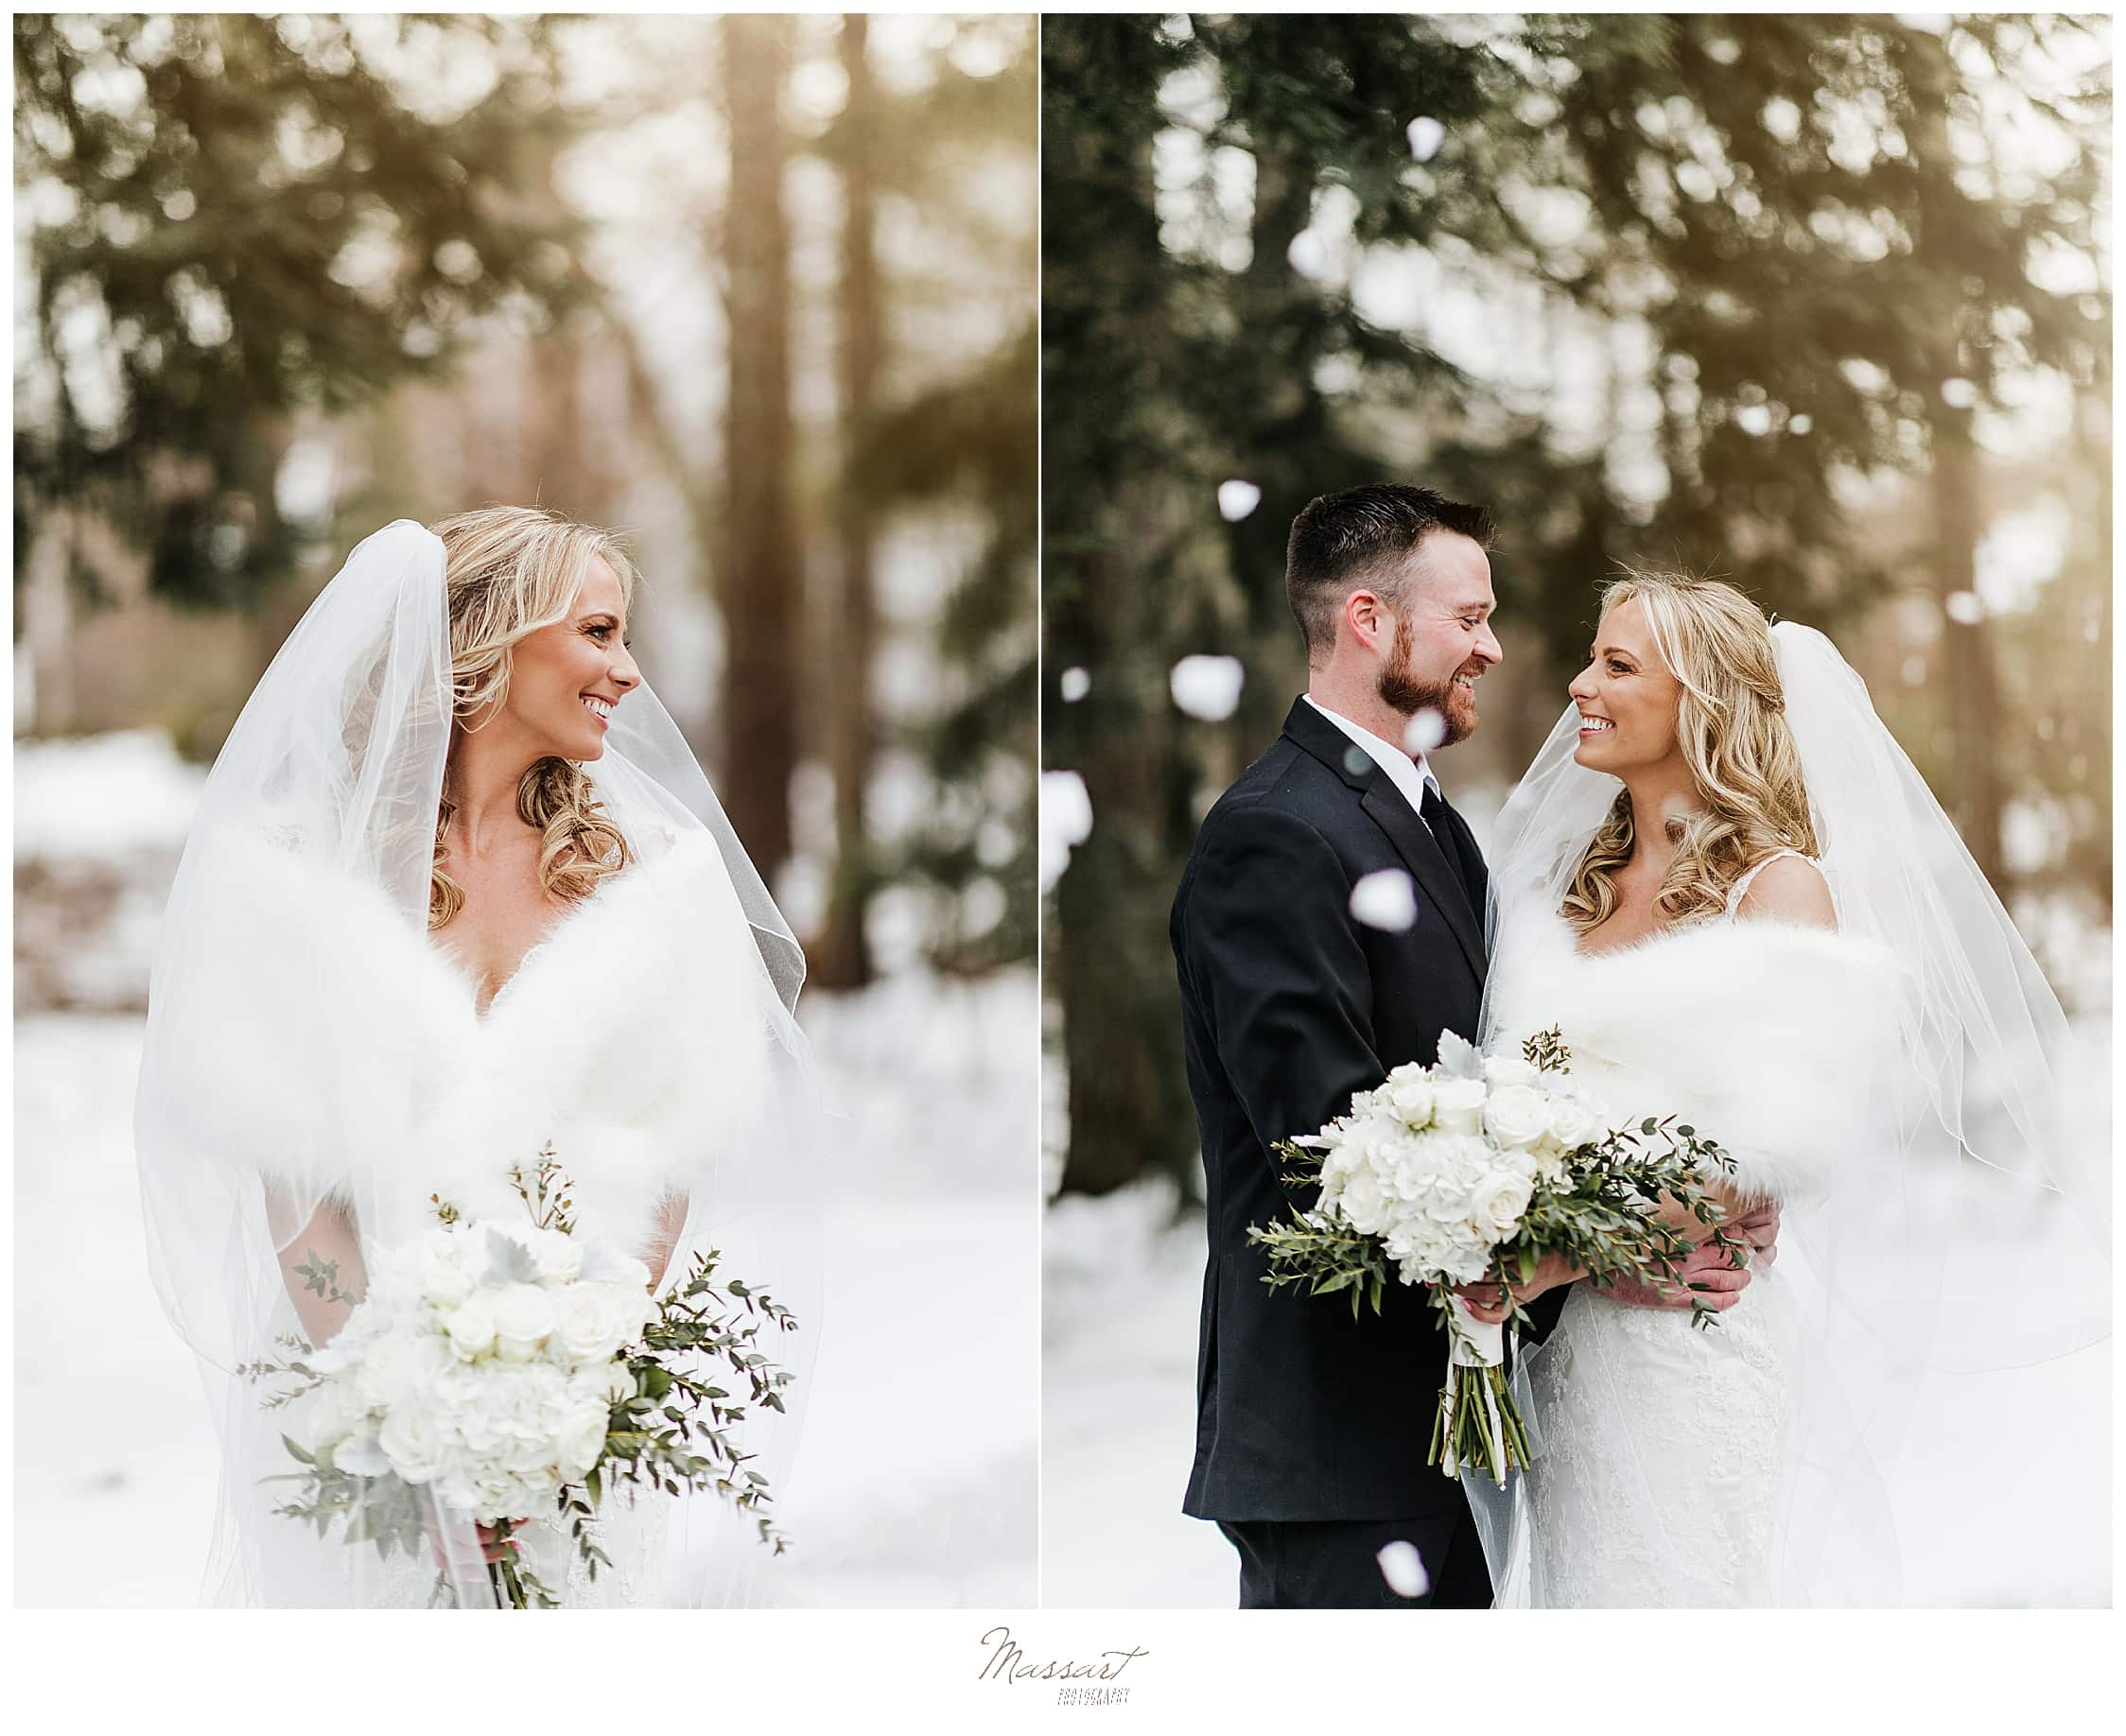 RI, CT, MA wedding photographers Massart Photography capture winter wedding portraits in Massachusetts